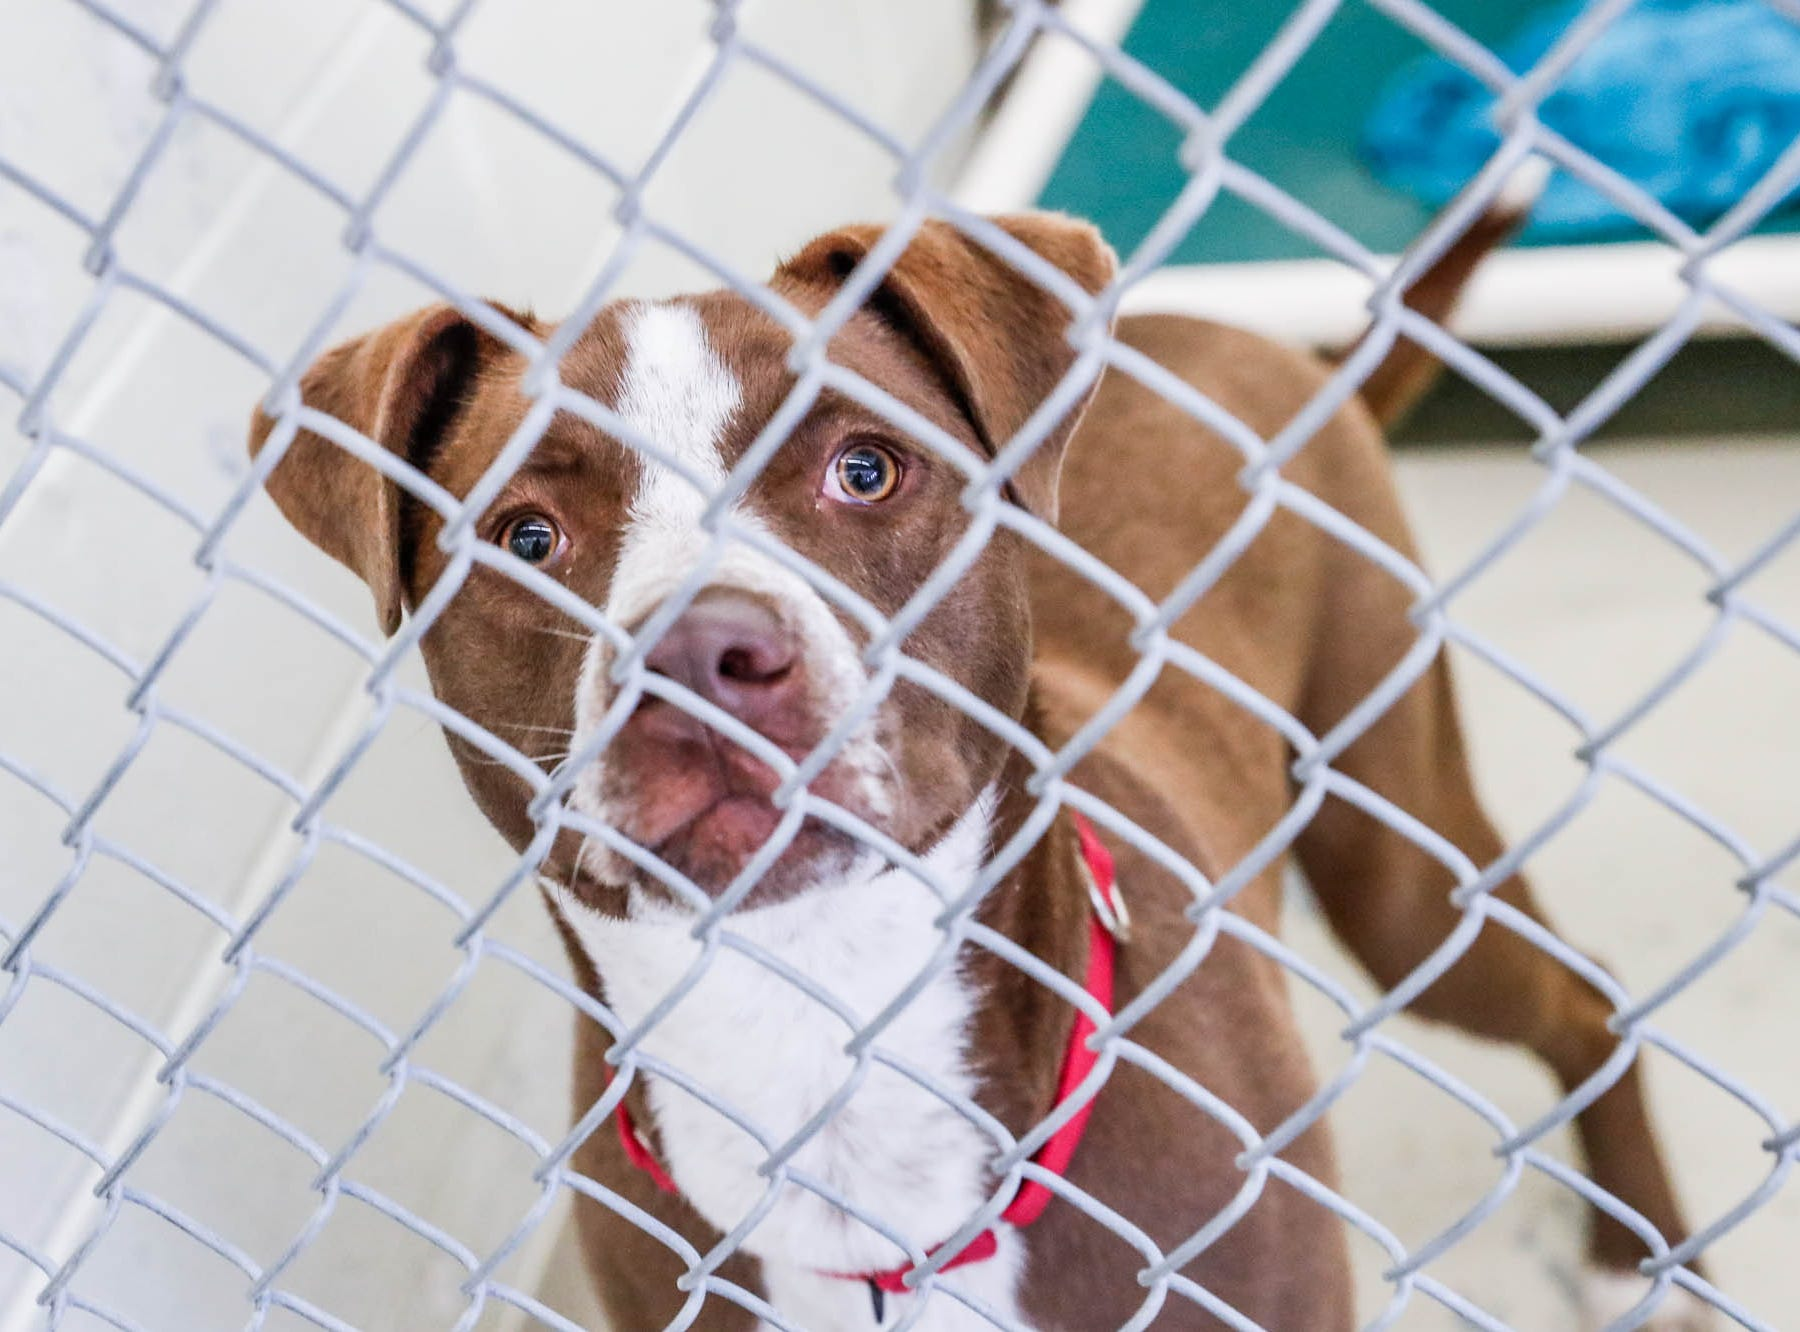 Backus, a nine month old male up for adoption from Indy Humane waits in his cage for a forever home during their Puppy and Kitten Baby Shower on Sunday, March 10, 2019. The event educates families on Indy Humane's foster care program, as Fosters are needed in the spring during puppy and kitten season.